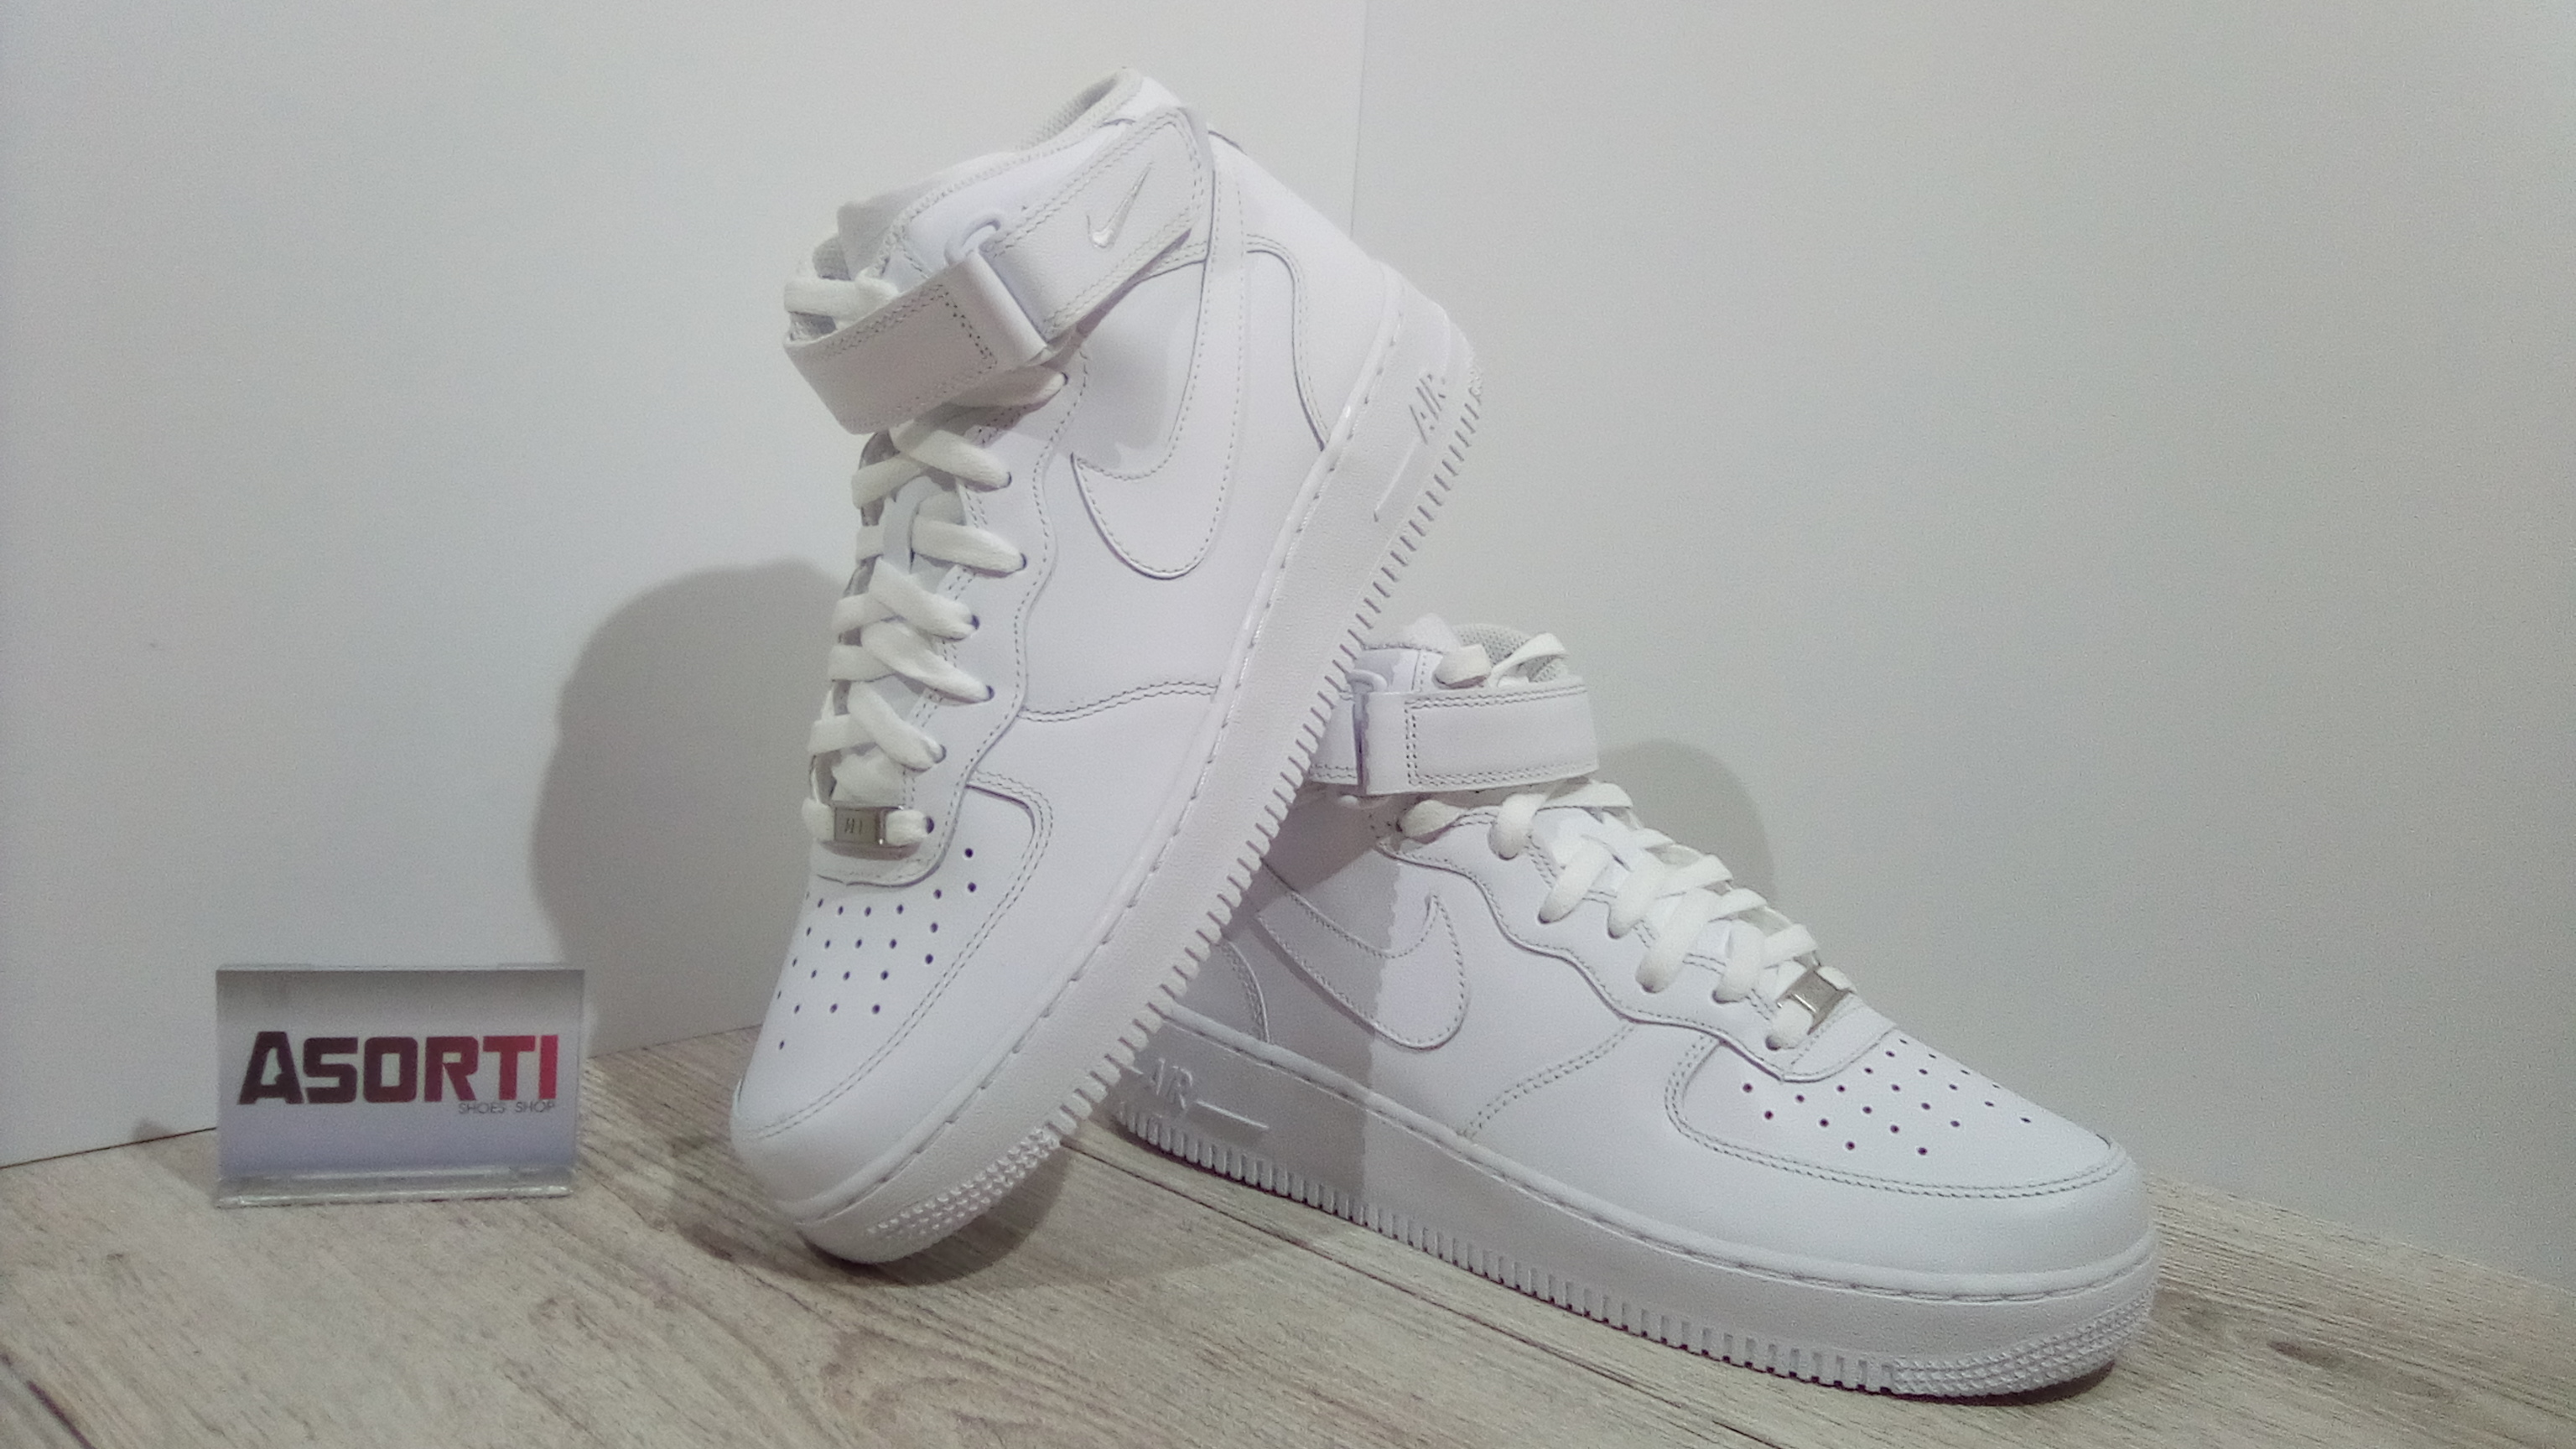 87eb7ce6 Мужские кроссовки Nike Air Force 1 Mid White (315123-111) белые ...